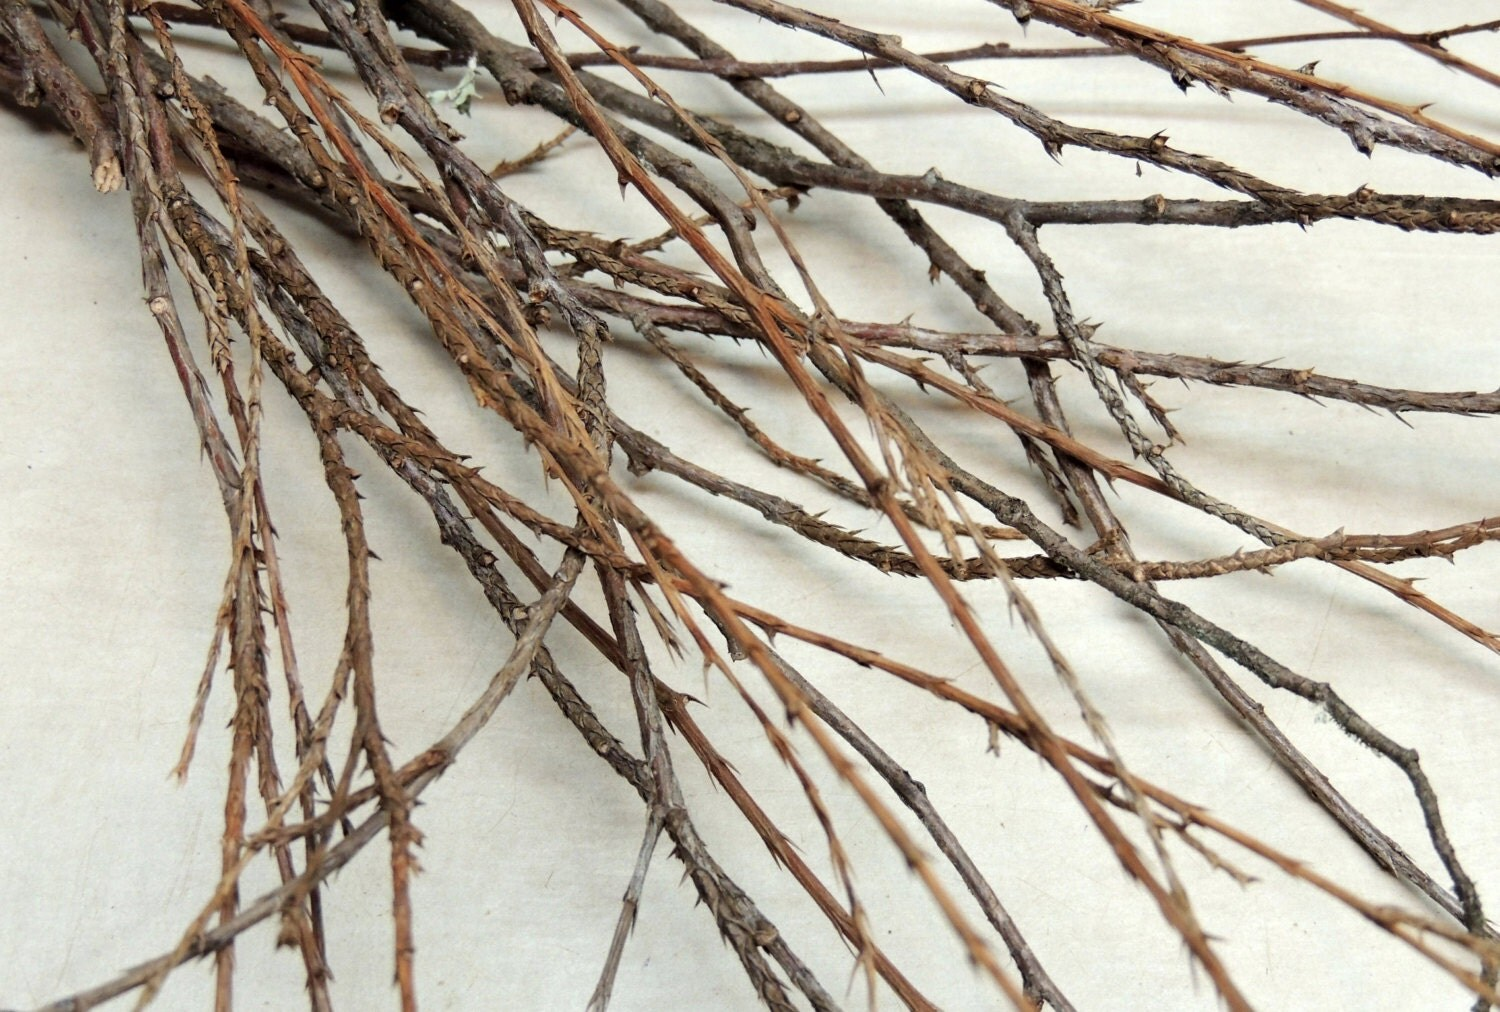 20 Cedar Twigs And Branches 16 To 24 Long For Dried